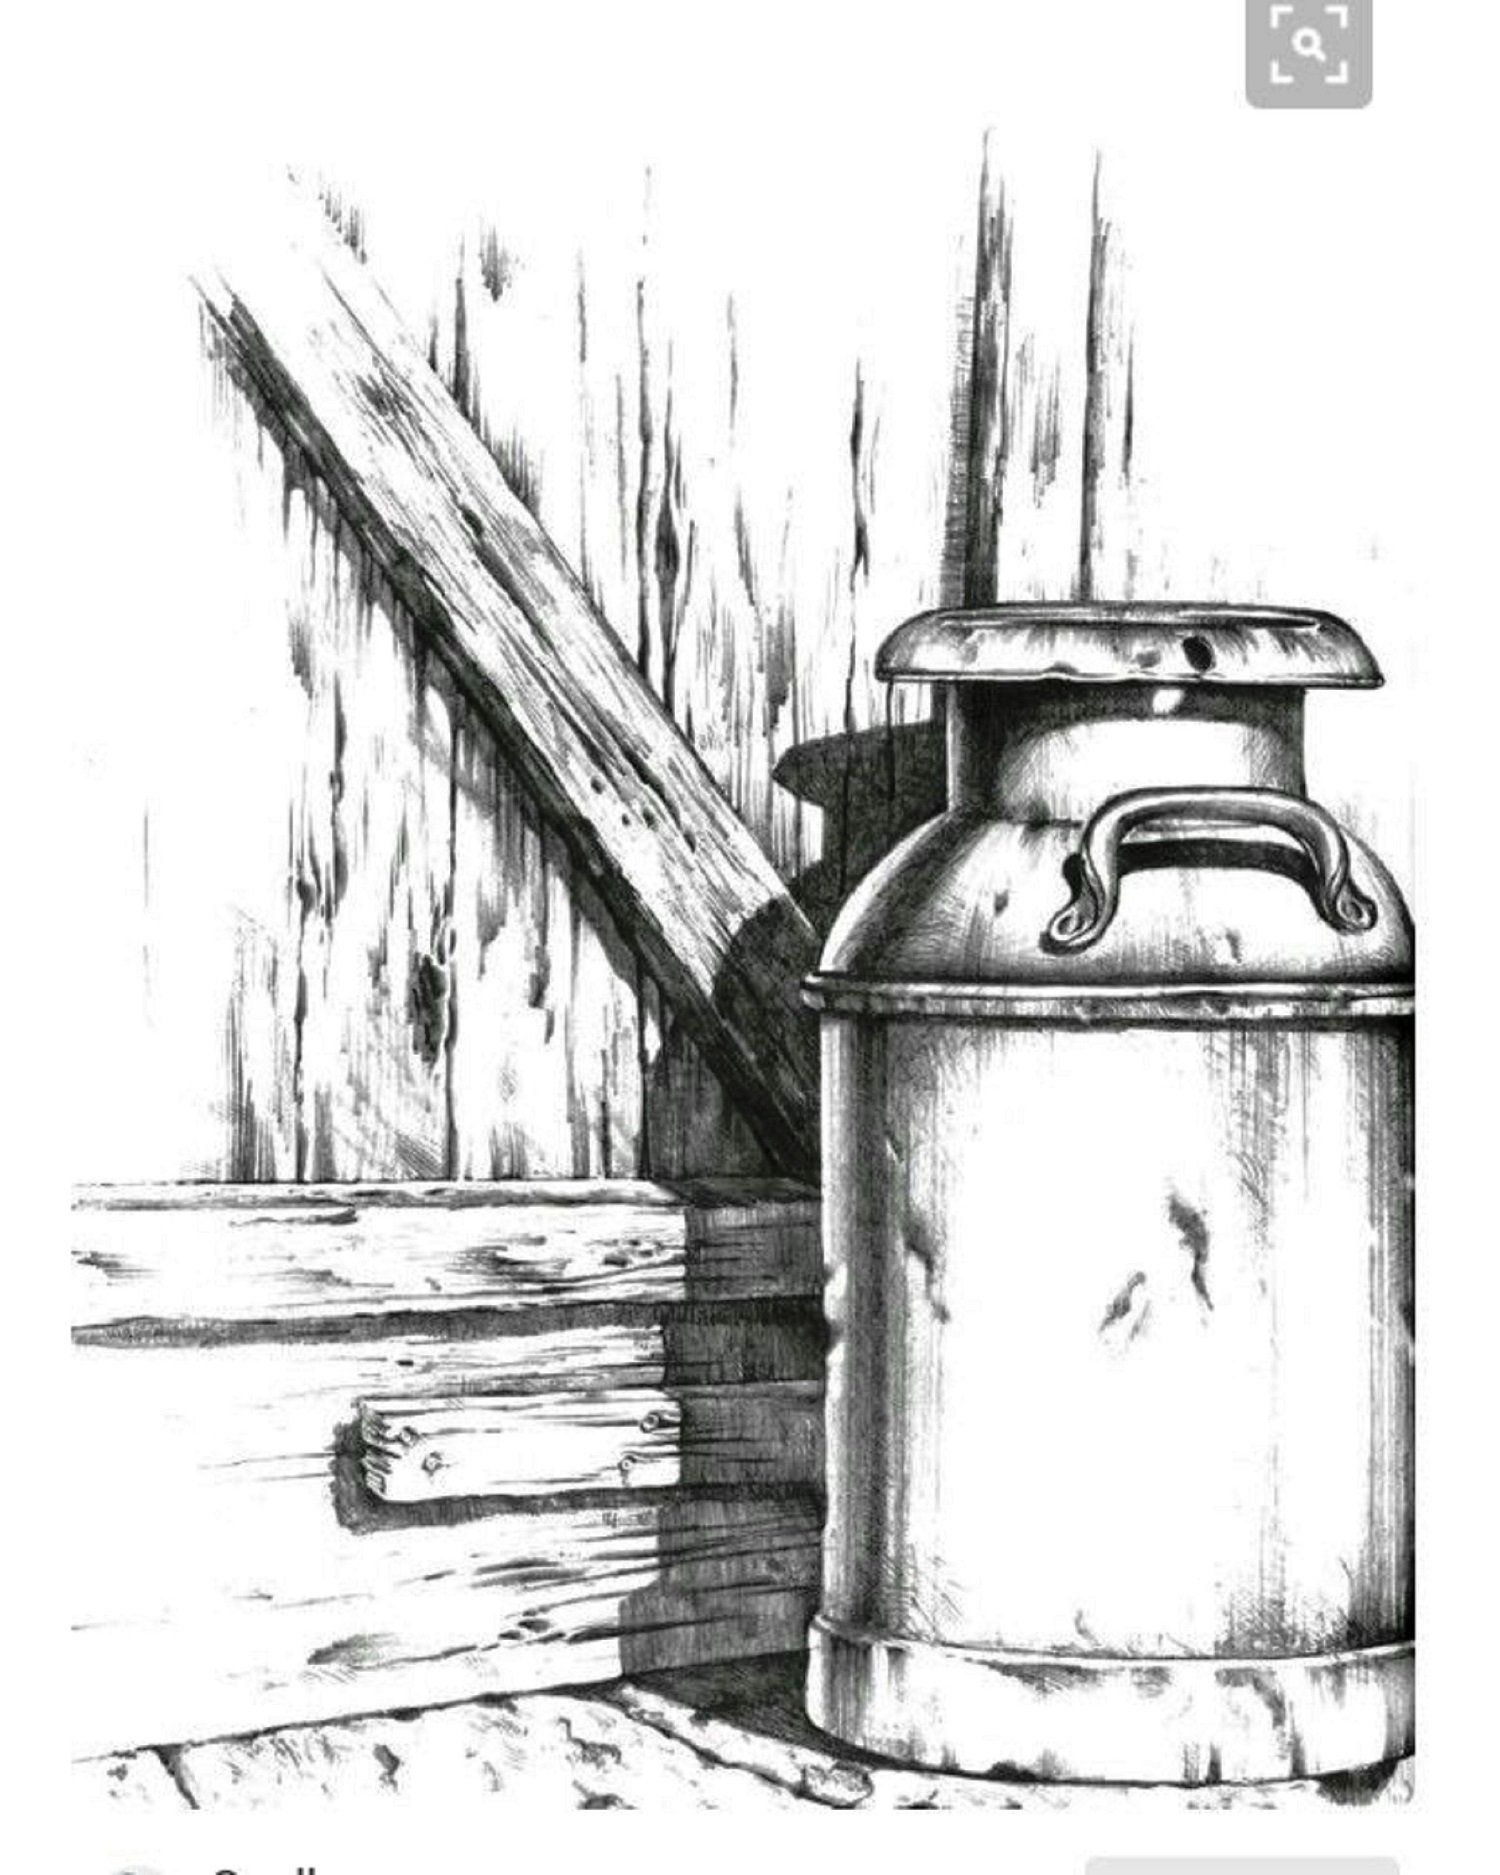 Country House Dra2wing: Milk Can Country Old Wooden Door Pencil Drawing,Man Cave